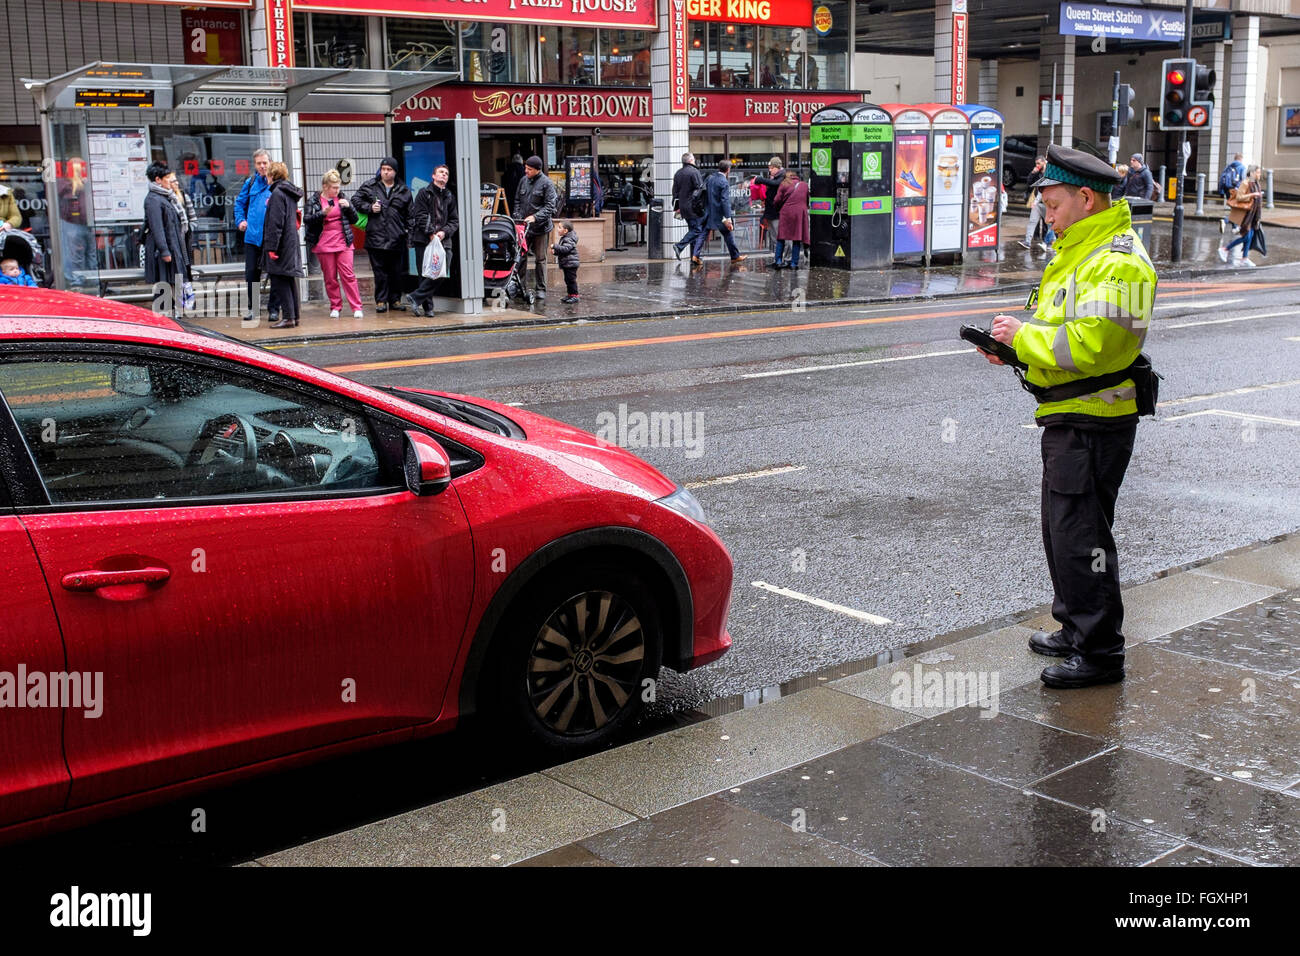 Traffic warden issuing a parking ticket to a car parked illegally in Glasgow city centre, Scotland, UK - Stock Image